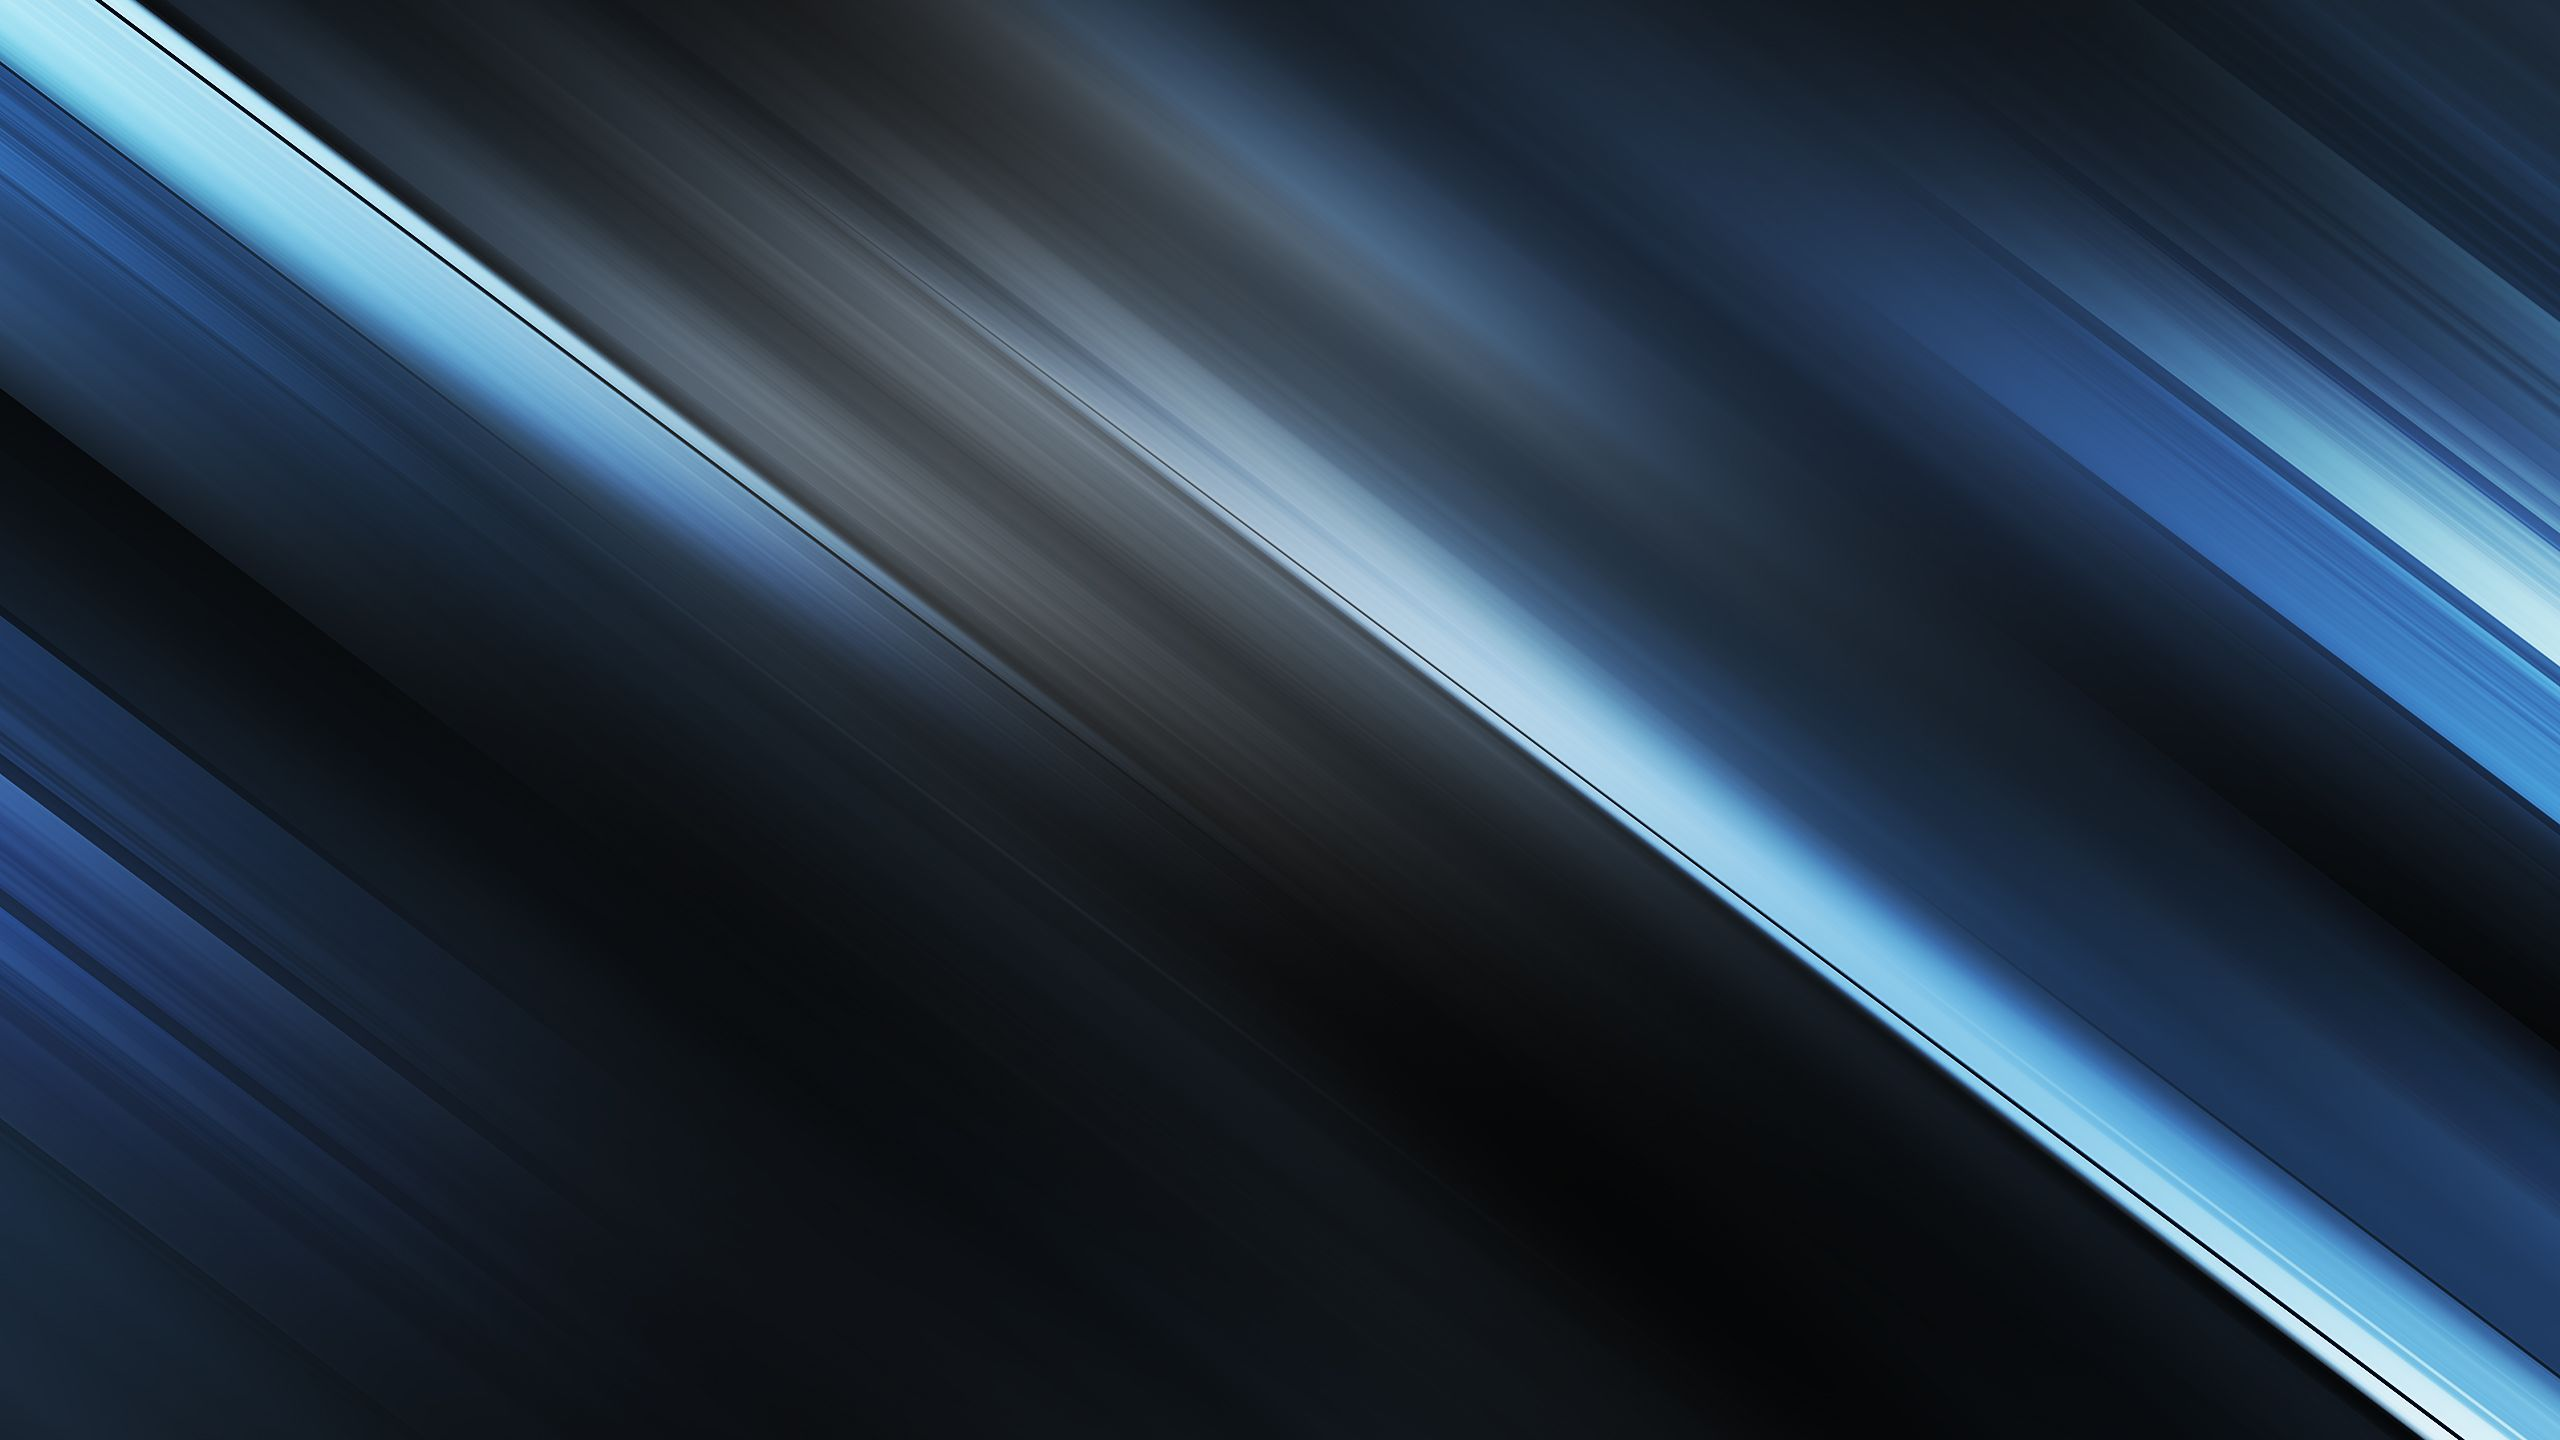 Blue and Silver Wallpaper - WallpaperSafari